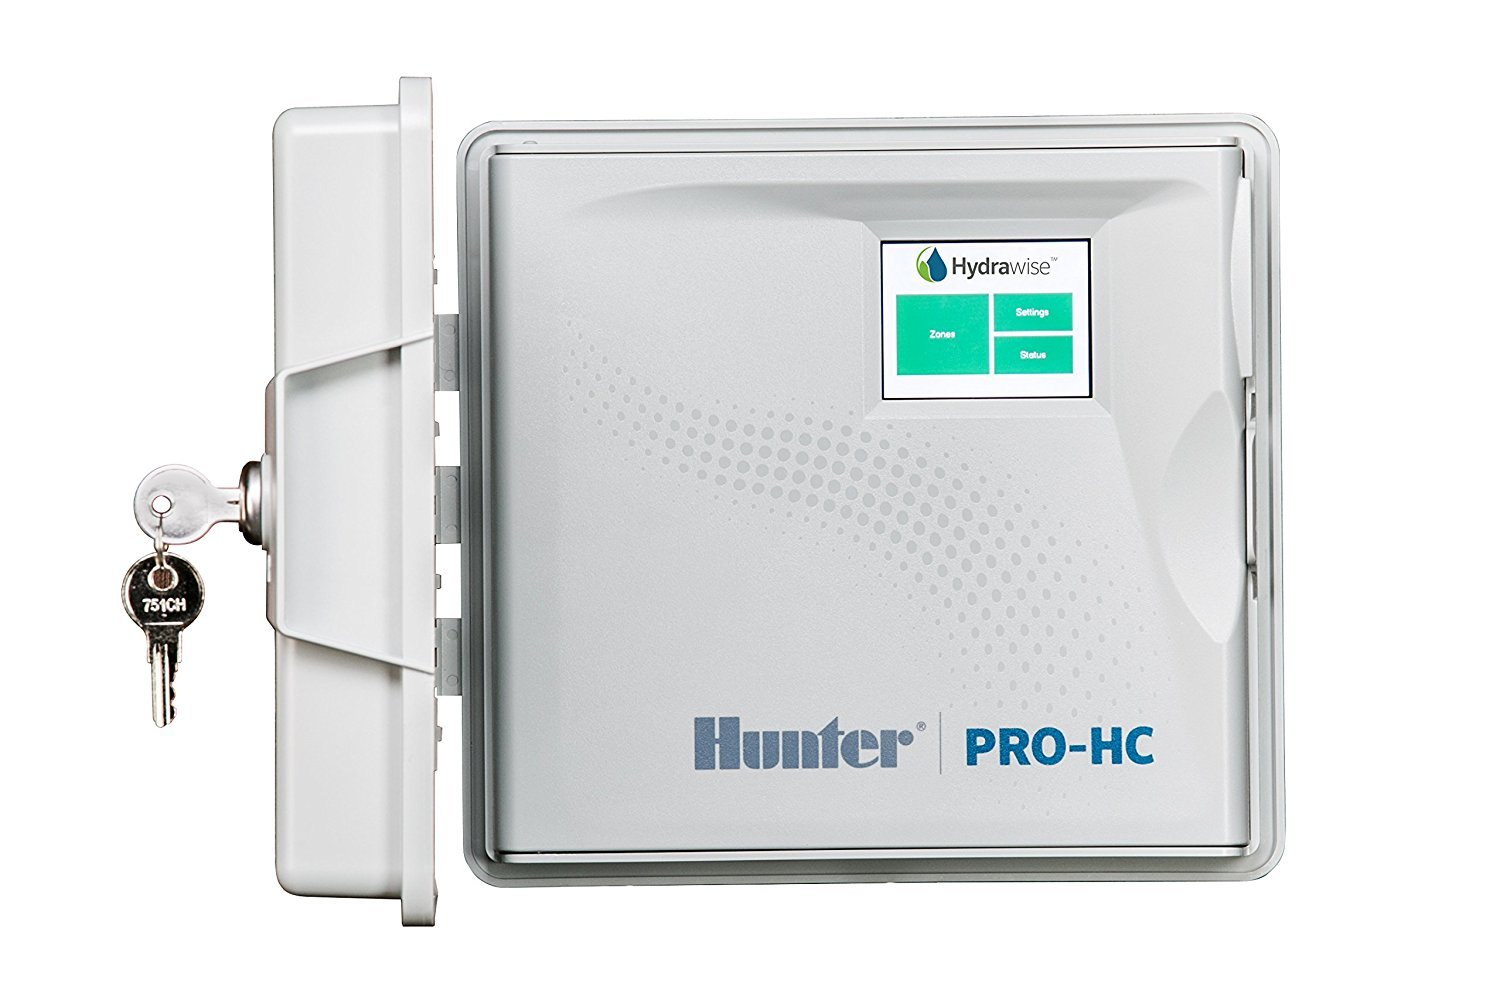 Hunter PRO-HC PHC-600 Residential Outdoor Professional Grade Wi-Fi Controller With Hydrawise Web-based Software - 6 Station